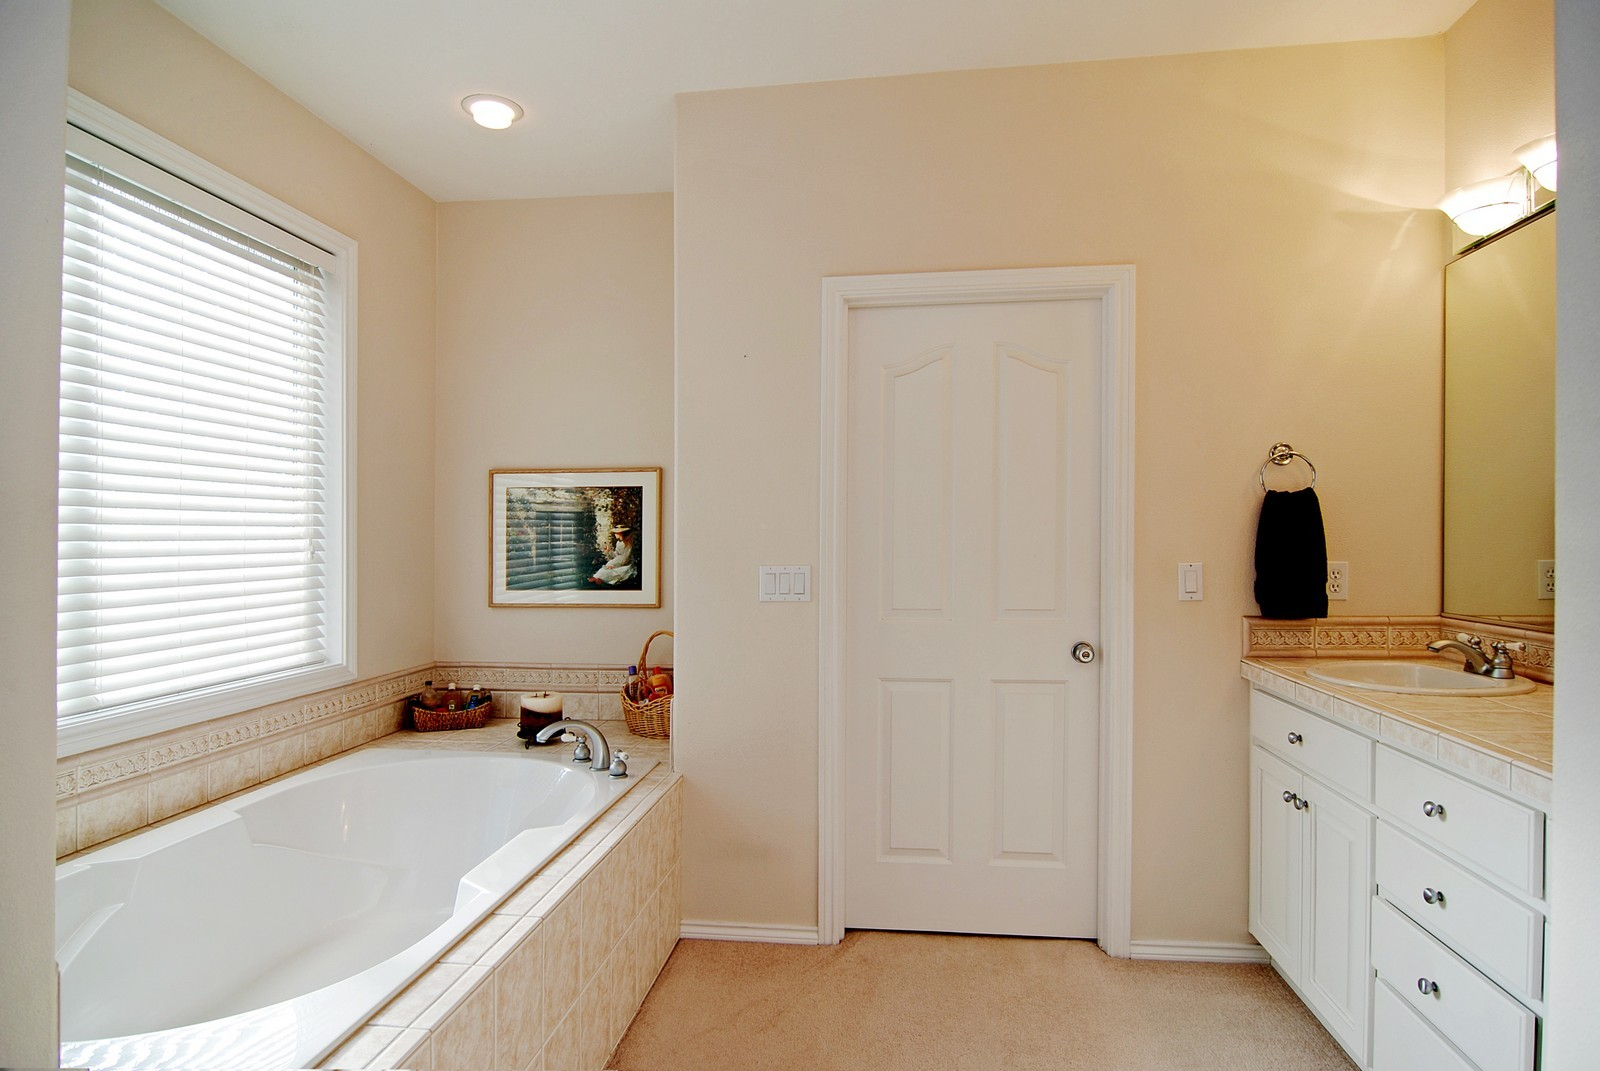 Real Estate Photography - 22553 SW 106th Ave, Tualatin, OR, 97062 - Master Bathroom